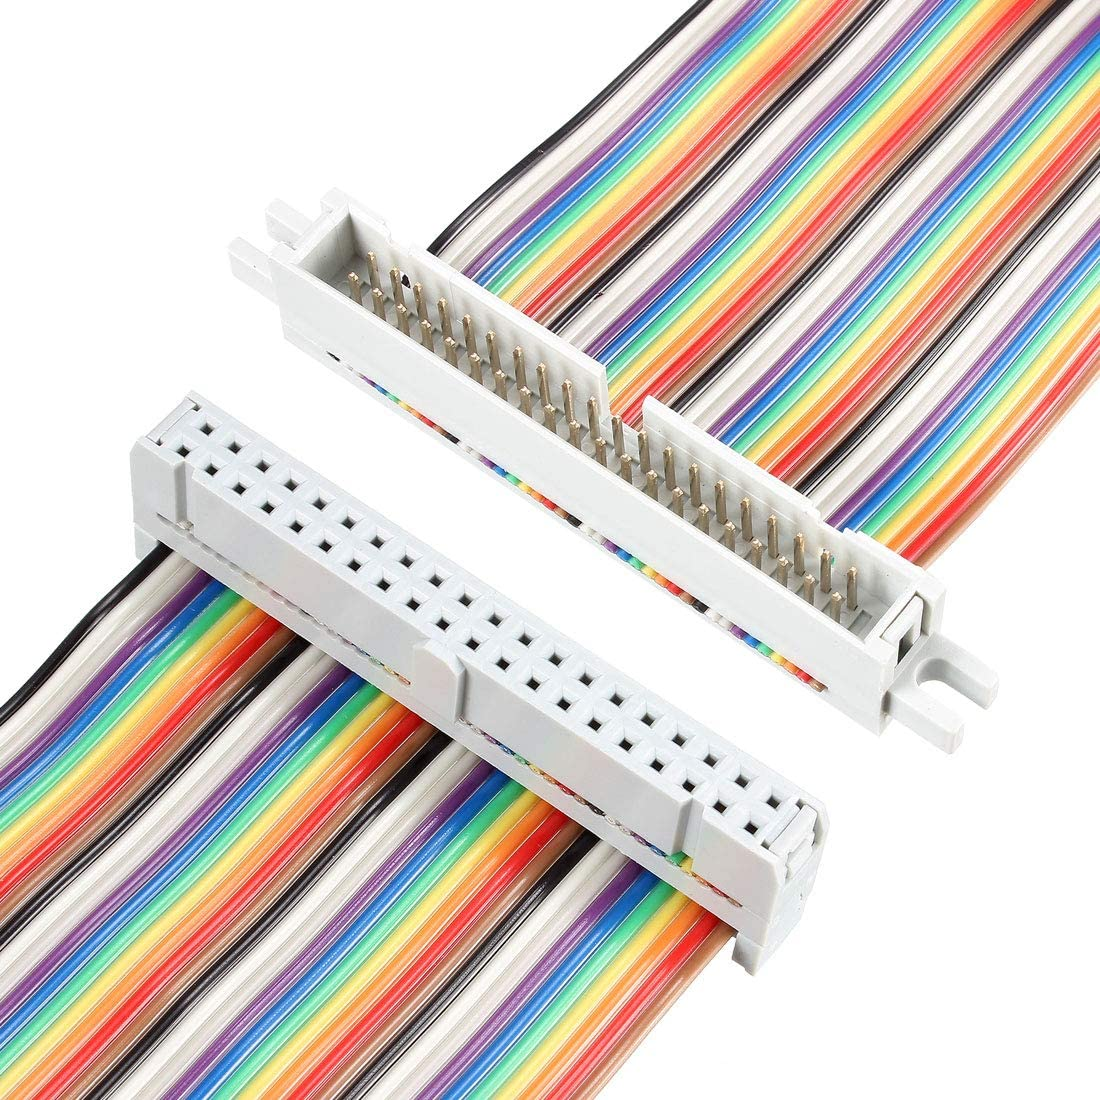 IDC Rainbow Wire Flat Ribbon Cable 40P FC//FD Connector 2.54mm Pitch 0.5m Length